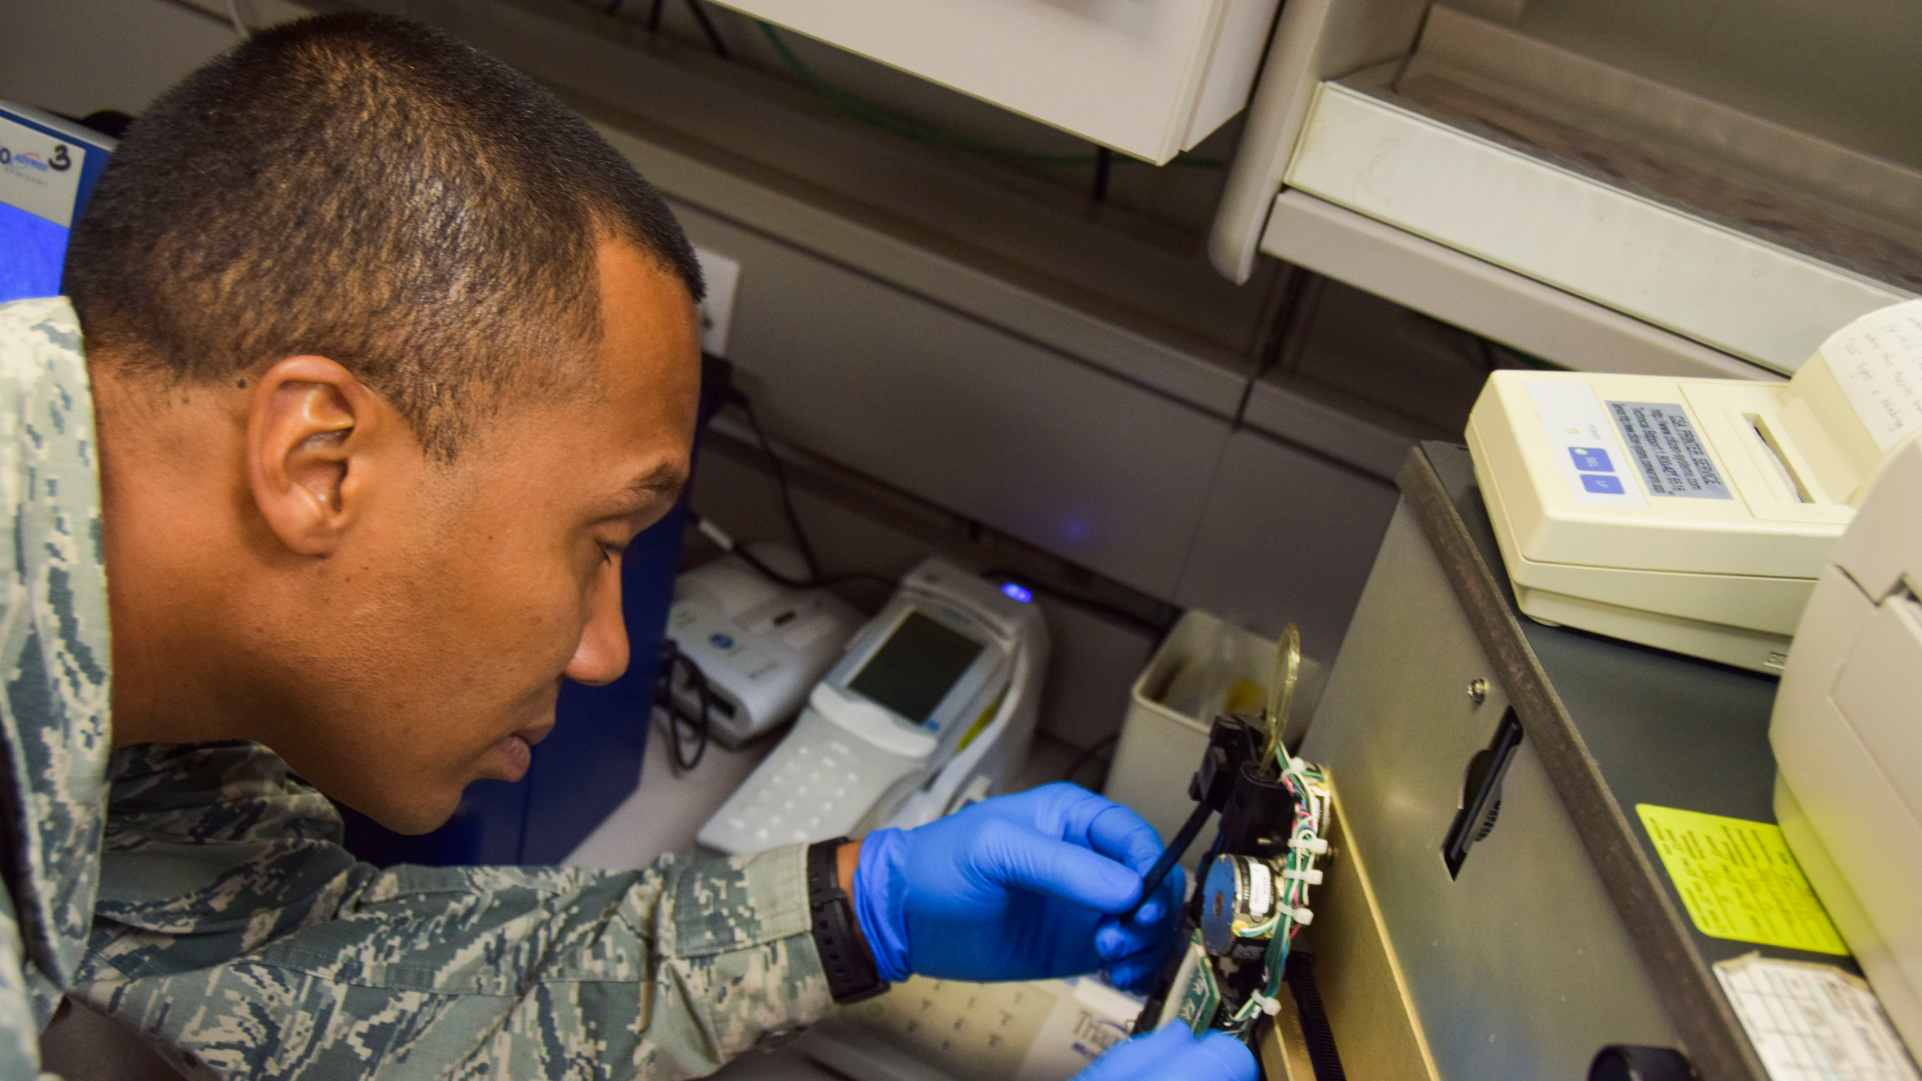 US Air Force technical sergeant working on medical equipment.